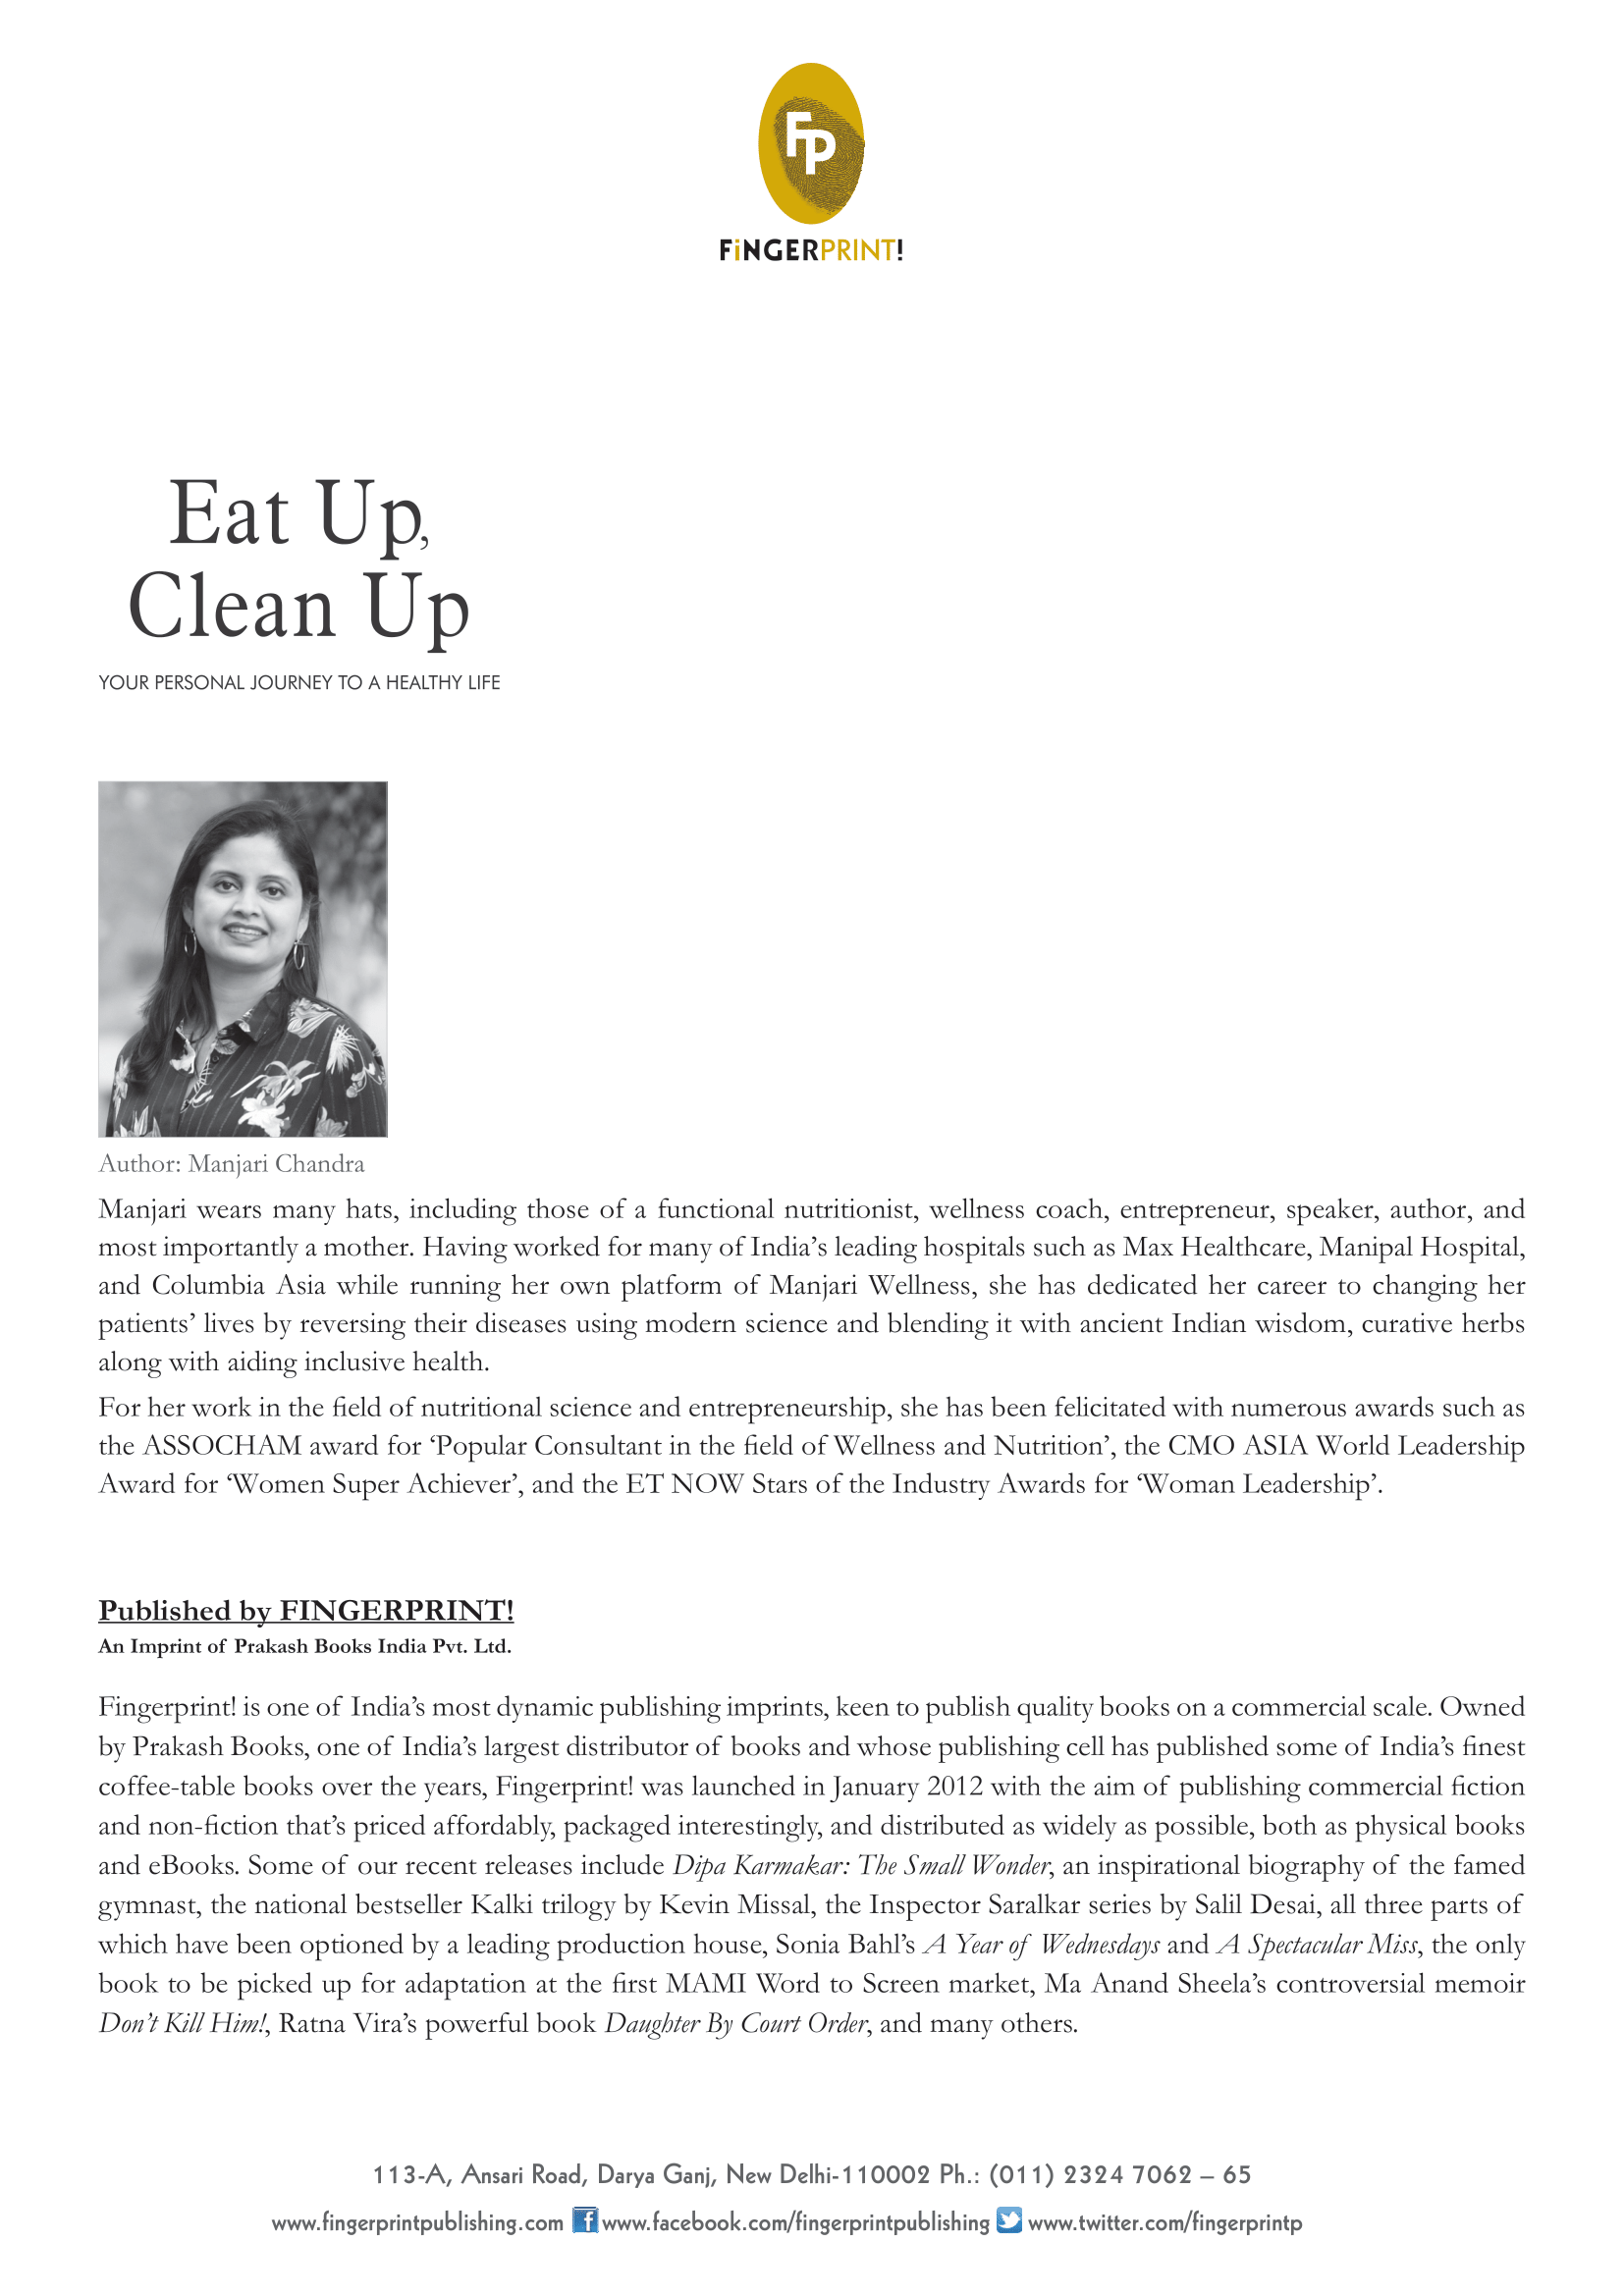 Eat Up, Clean Up by Manjari Chandra press release-2